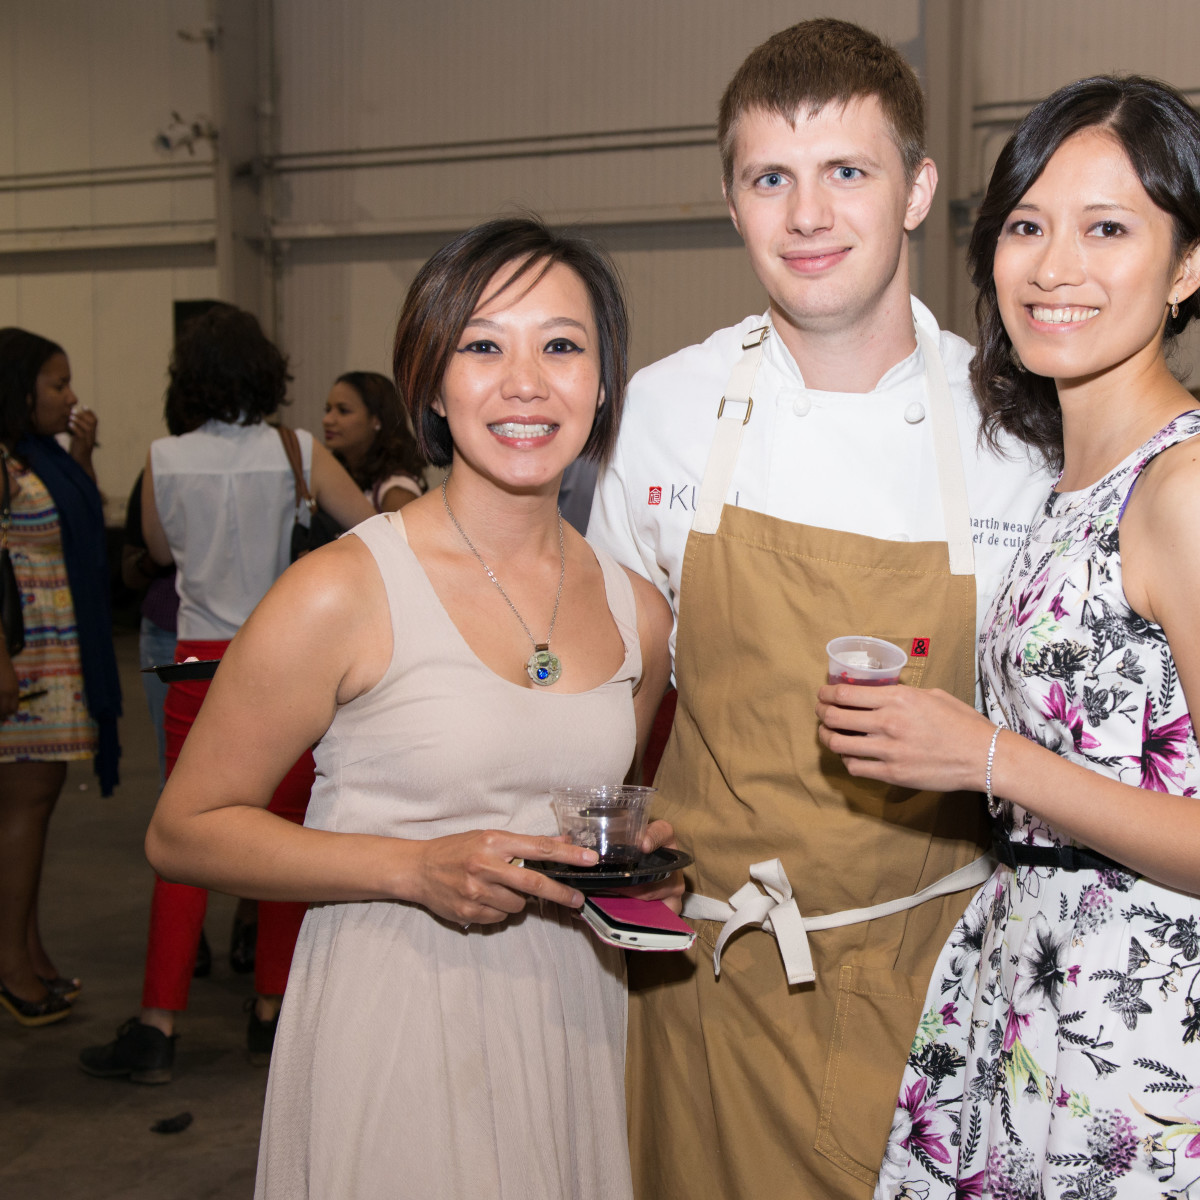 Houston, Tastemakers, May 2015, Vassaly Sivanthaphanith, Martin Weaver, Nguyet Nguyen